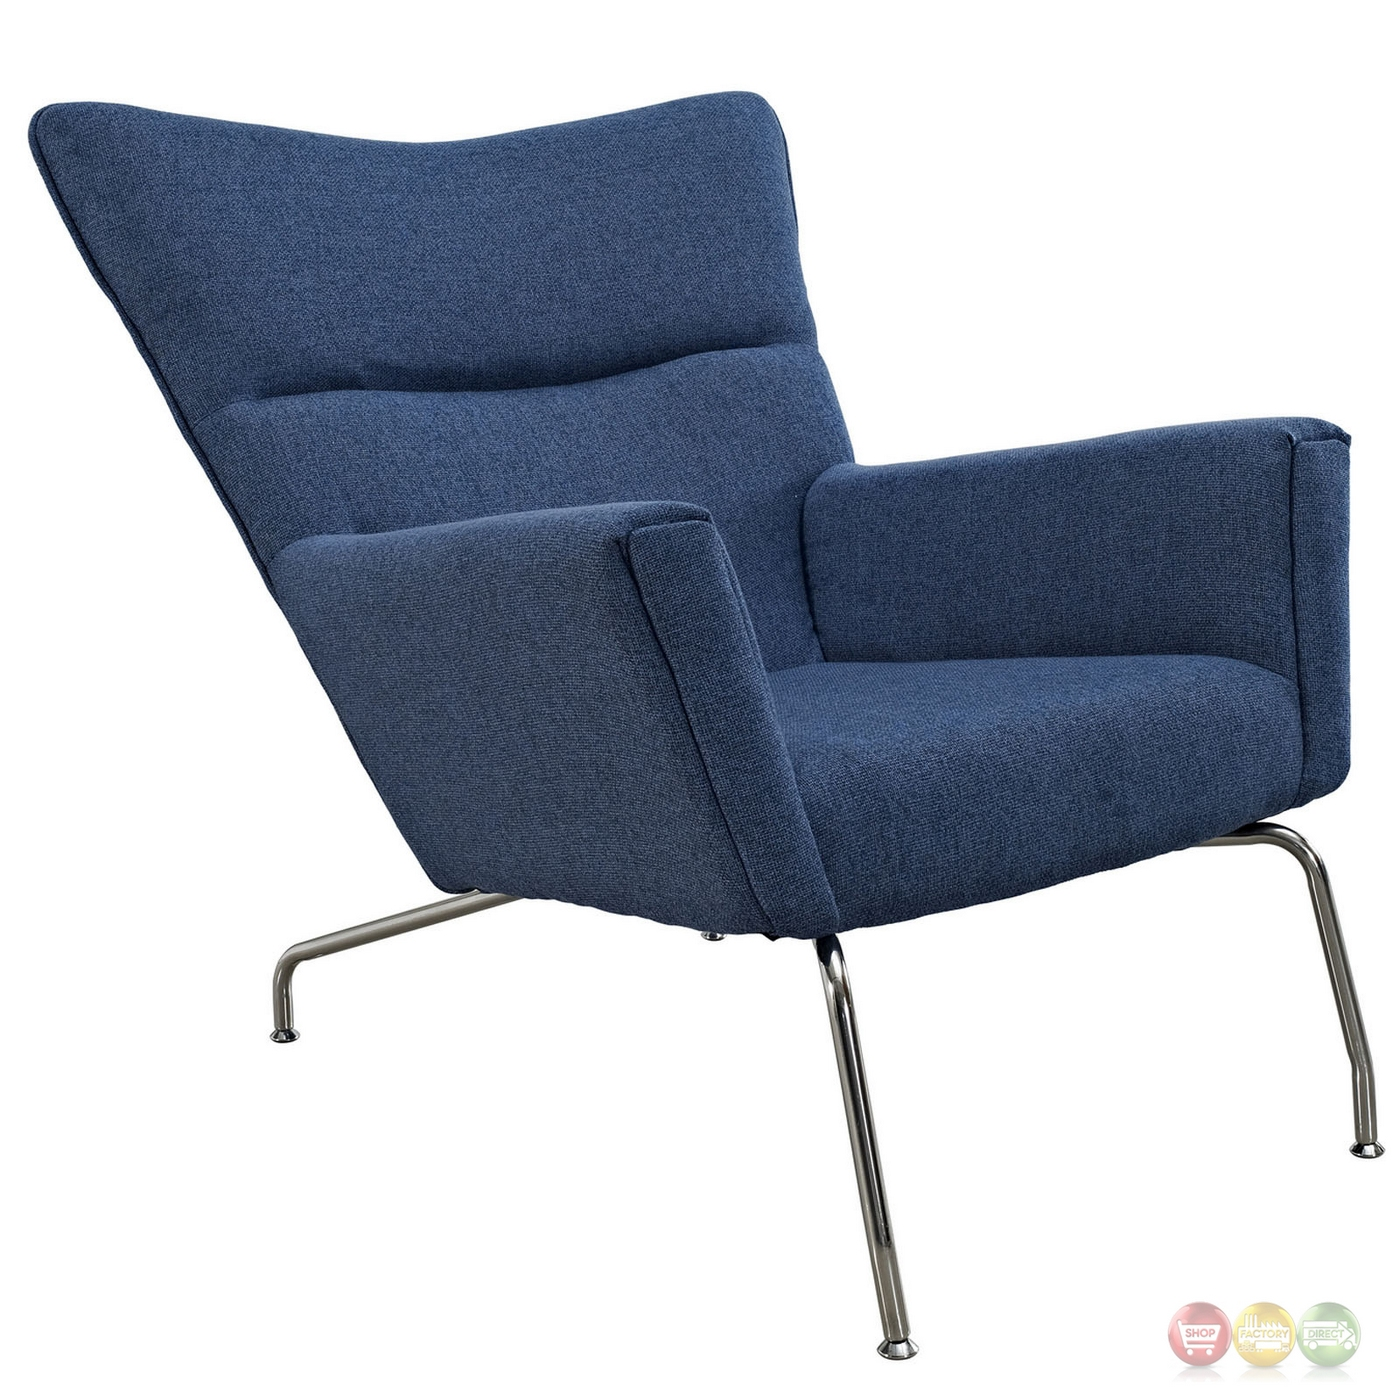 Class Modern Wing back Upholstered Lounge Chair W chrome Legs Blue Tweed